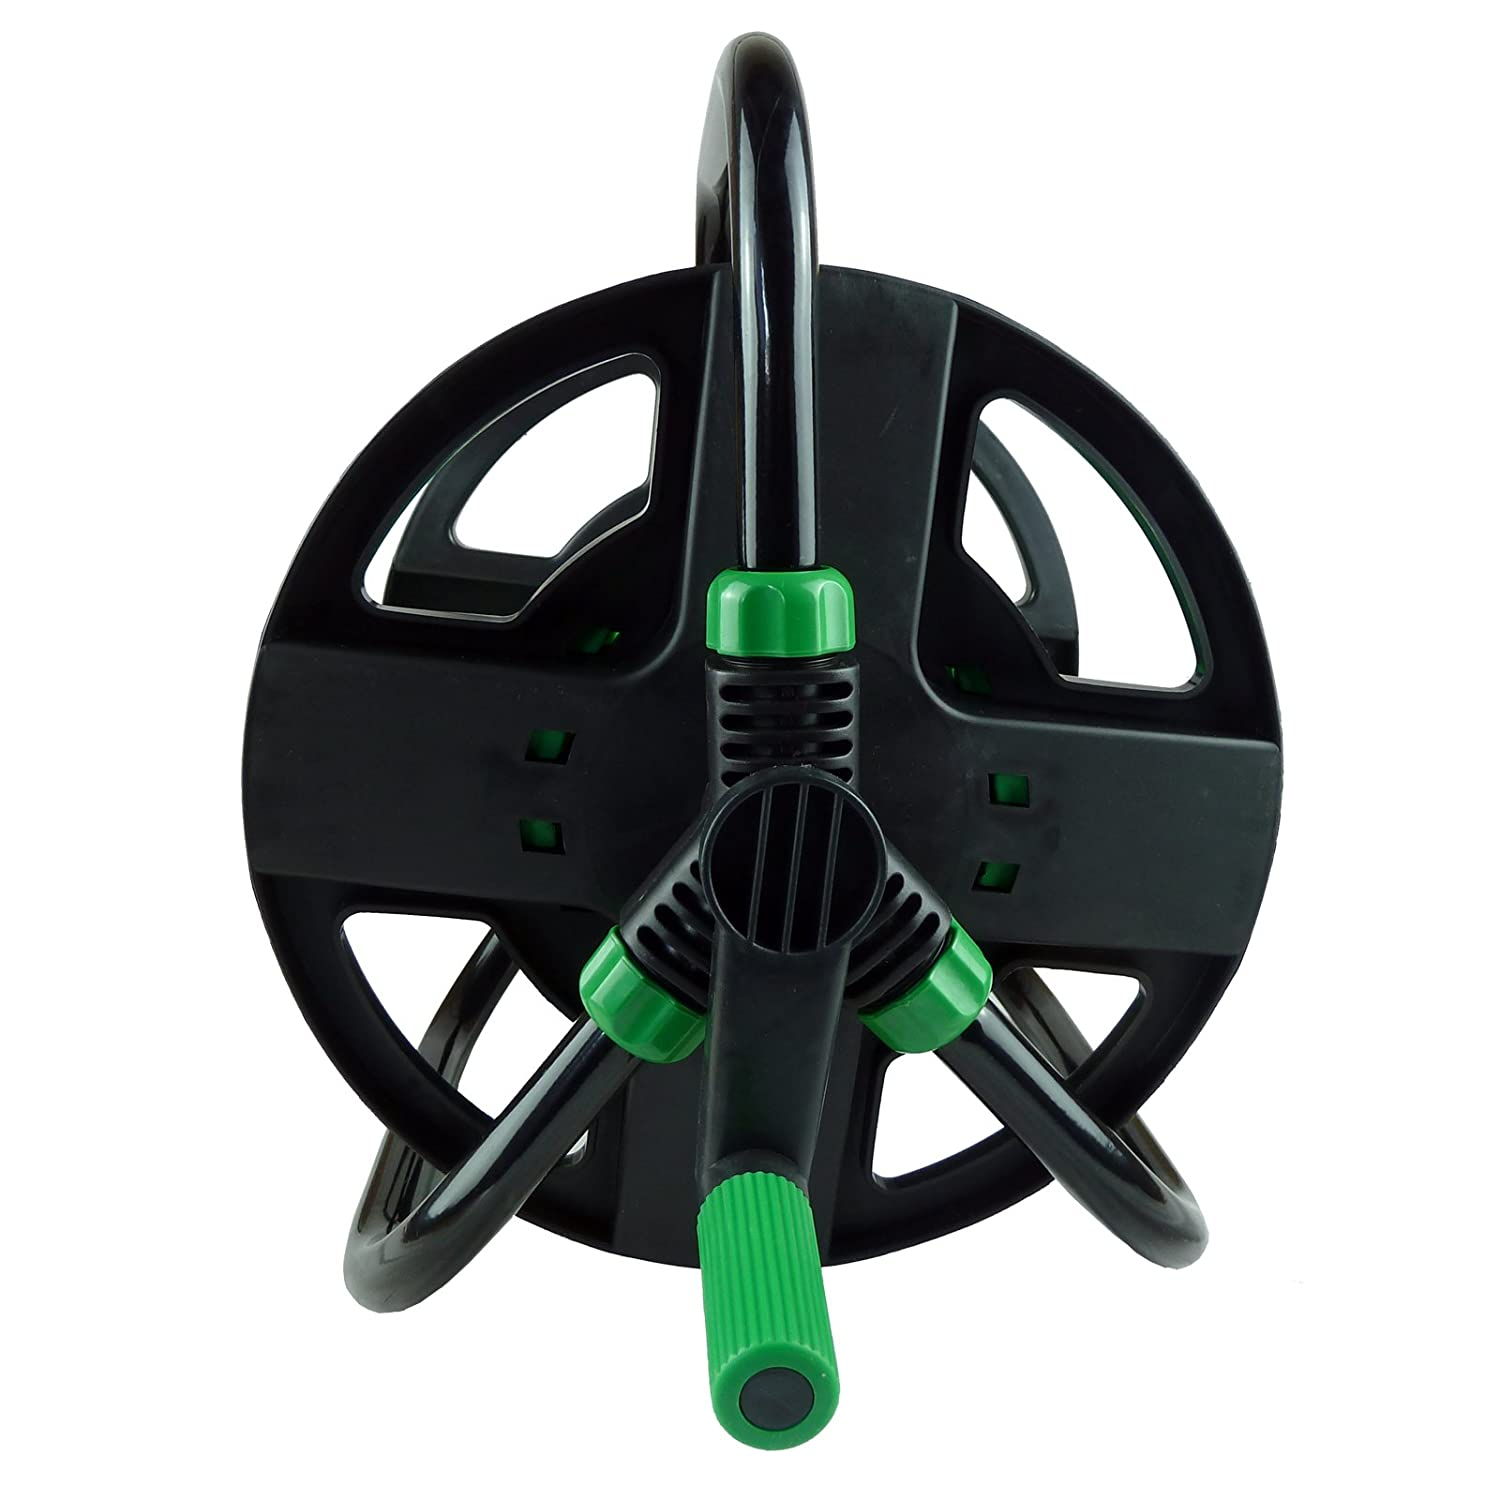 30m Portable Hose Reel - Free Standing Compact Reel We Search You Save